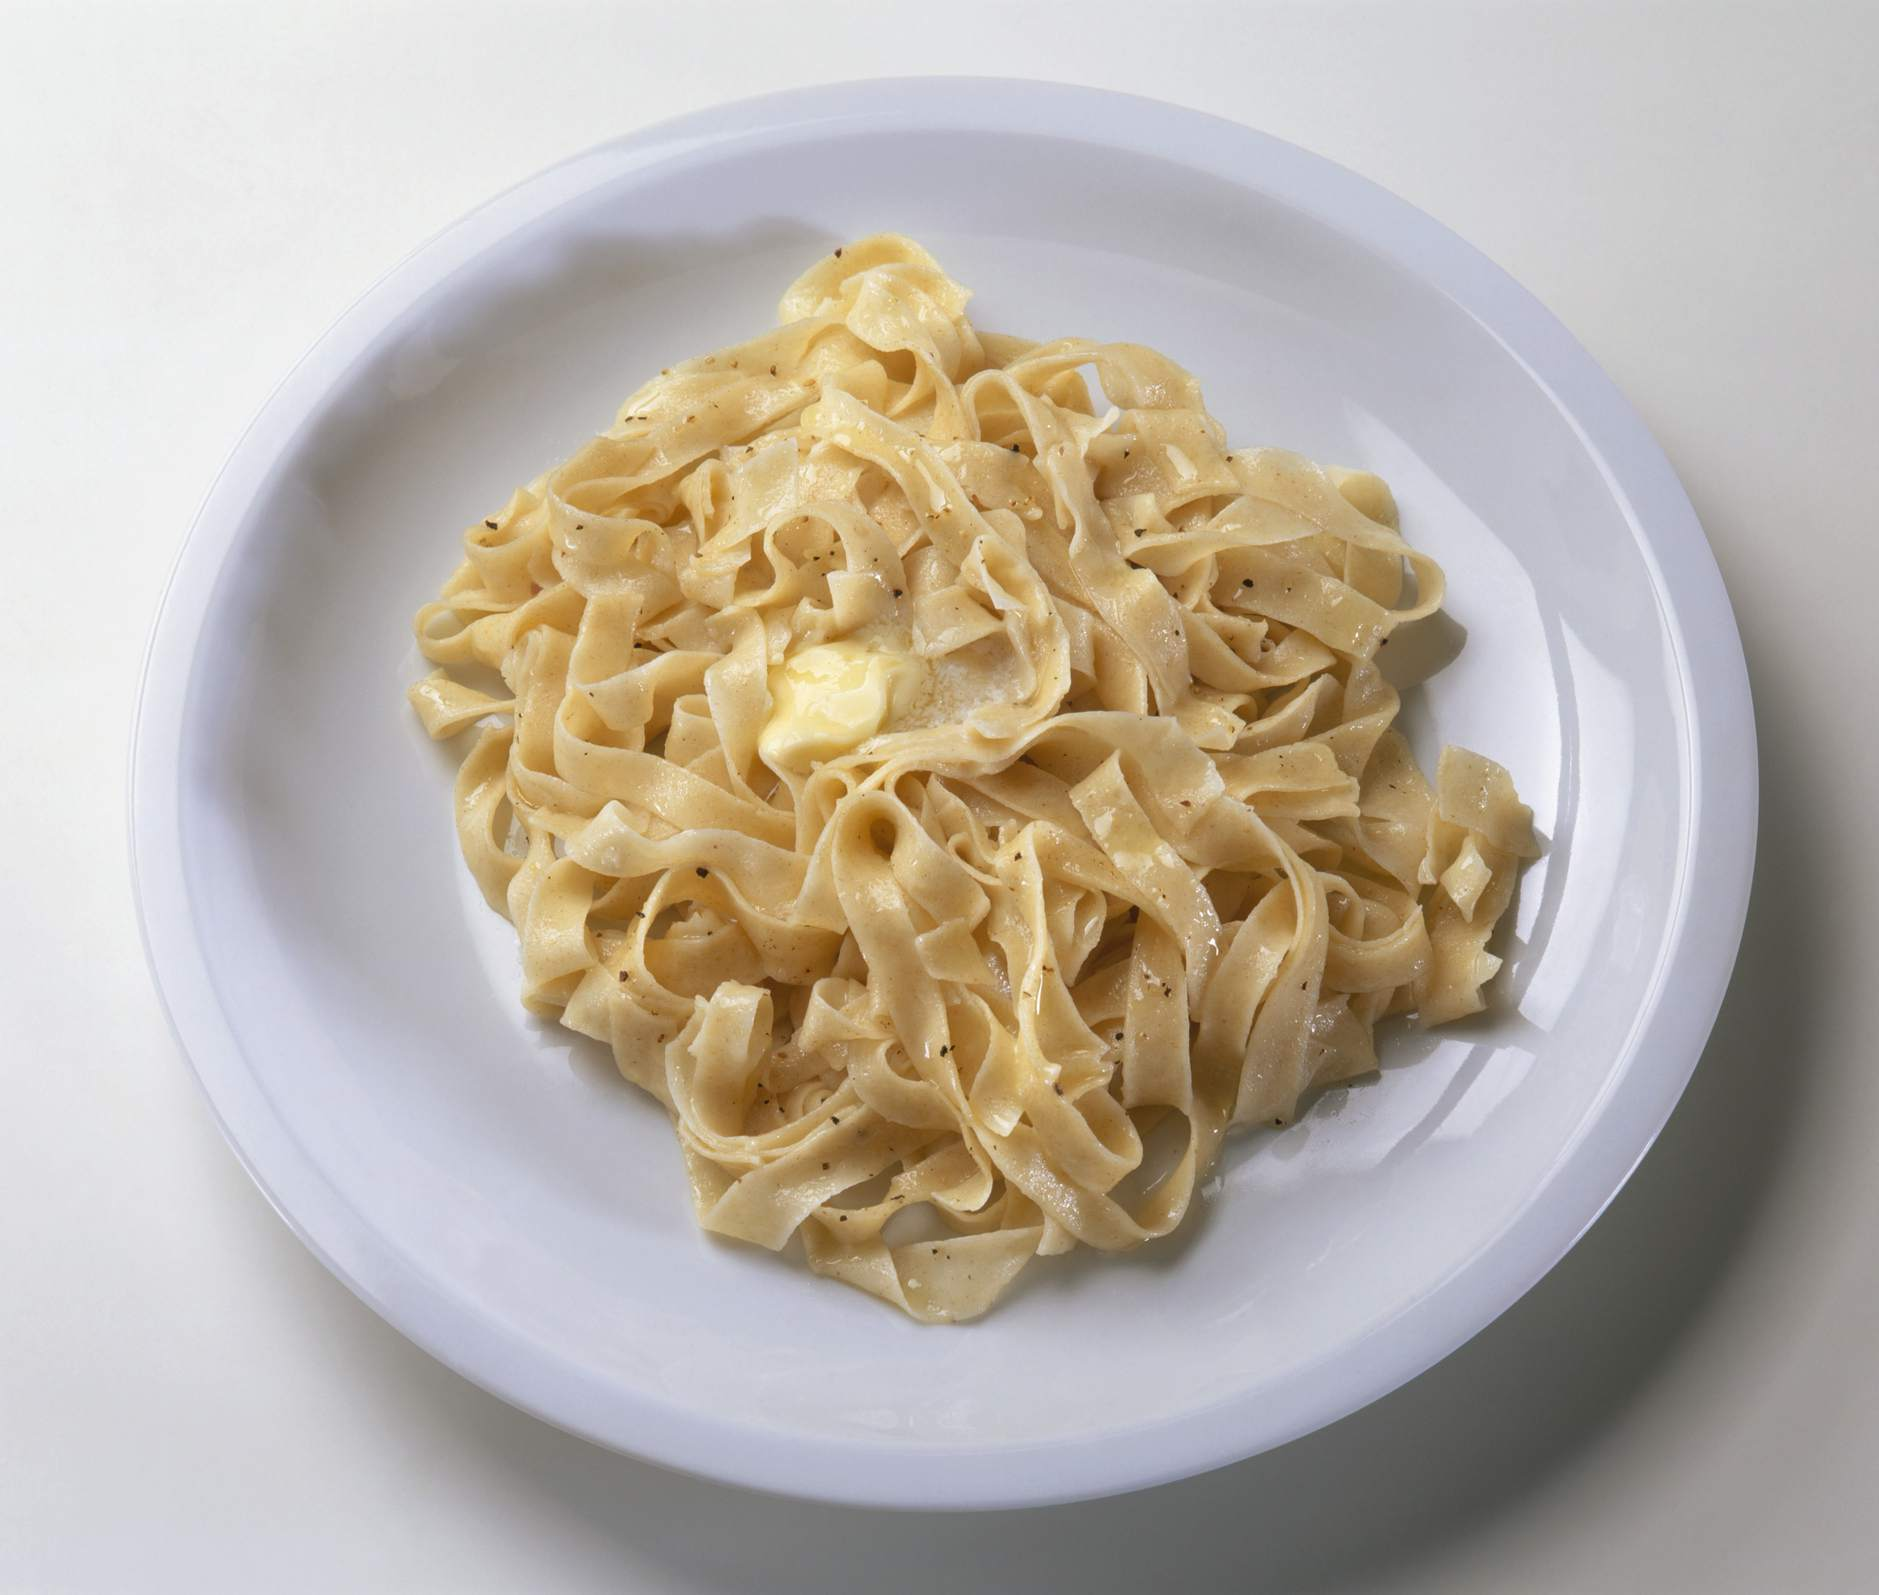 Fettucine served with butter and ground black peppercorn on white plate